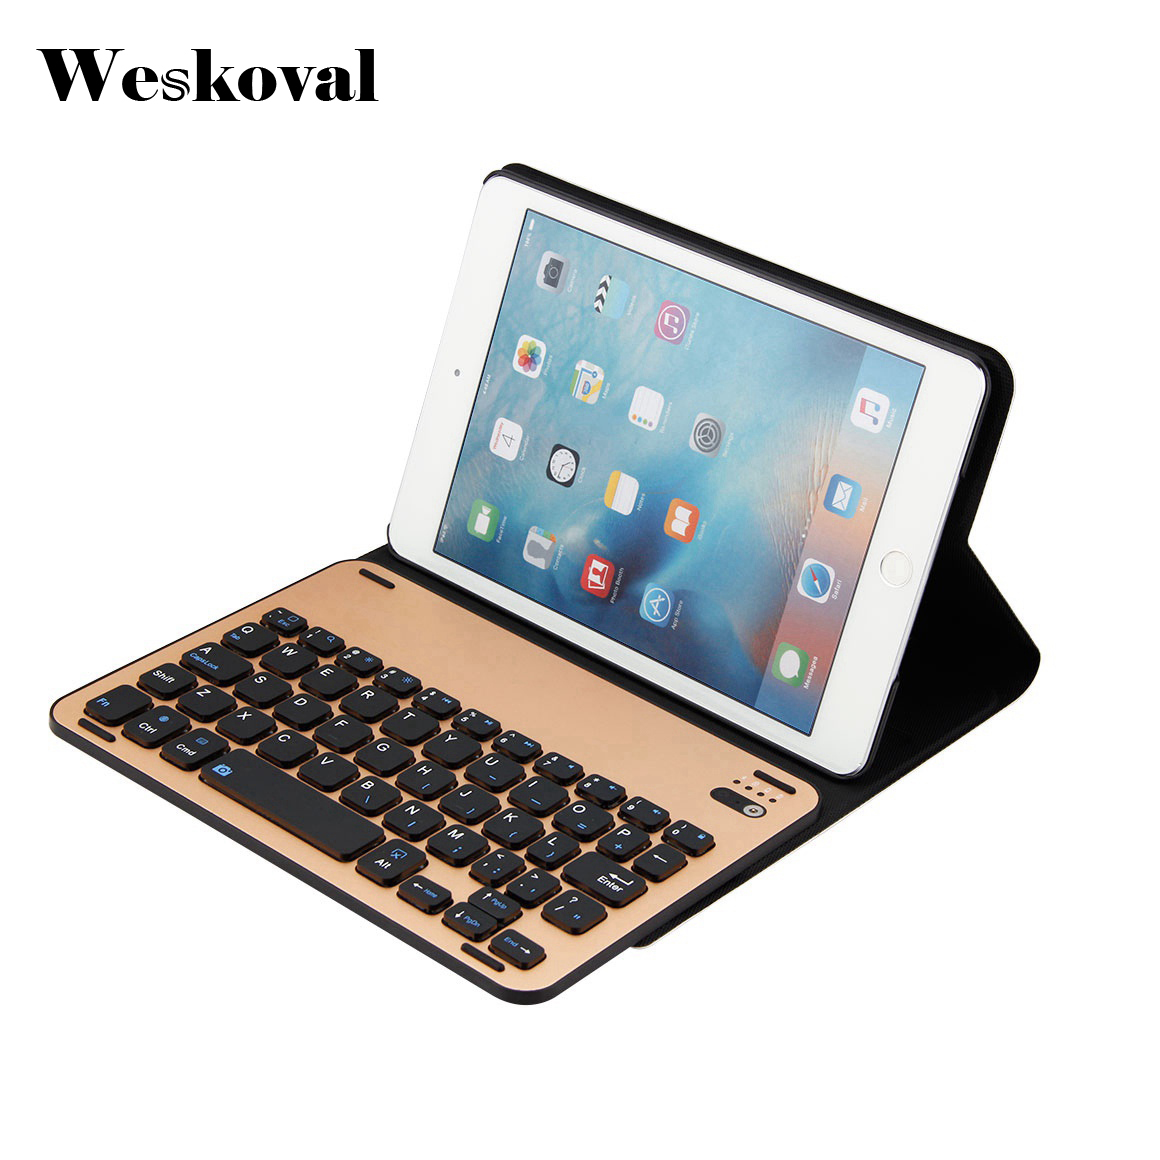 Wireless Bluetooth Keyboard For iPad Mini 4 Case For iPad Mini 4 7.9 inch Tablet Flip Leather Stand Cover Capa Fundas+Pen laptop keyboard for hp for envy 4 1014tu 4 1014tx 4 1015tu 4 1015tx 4 1018tu backlit northwest africa 692759 fp1 mp 11m6j698w